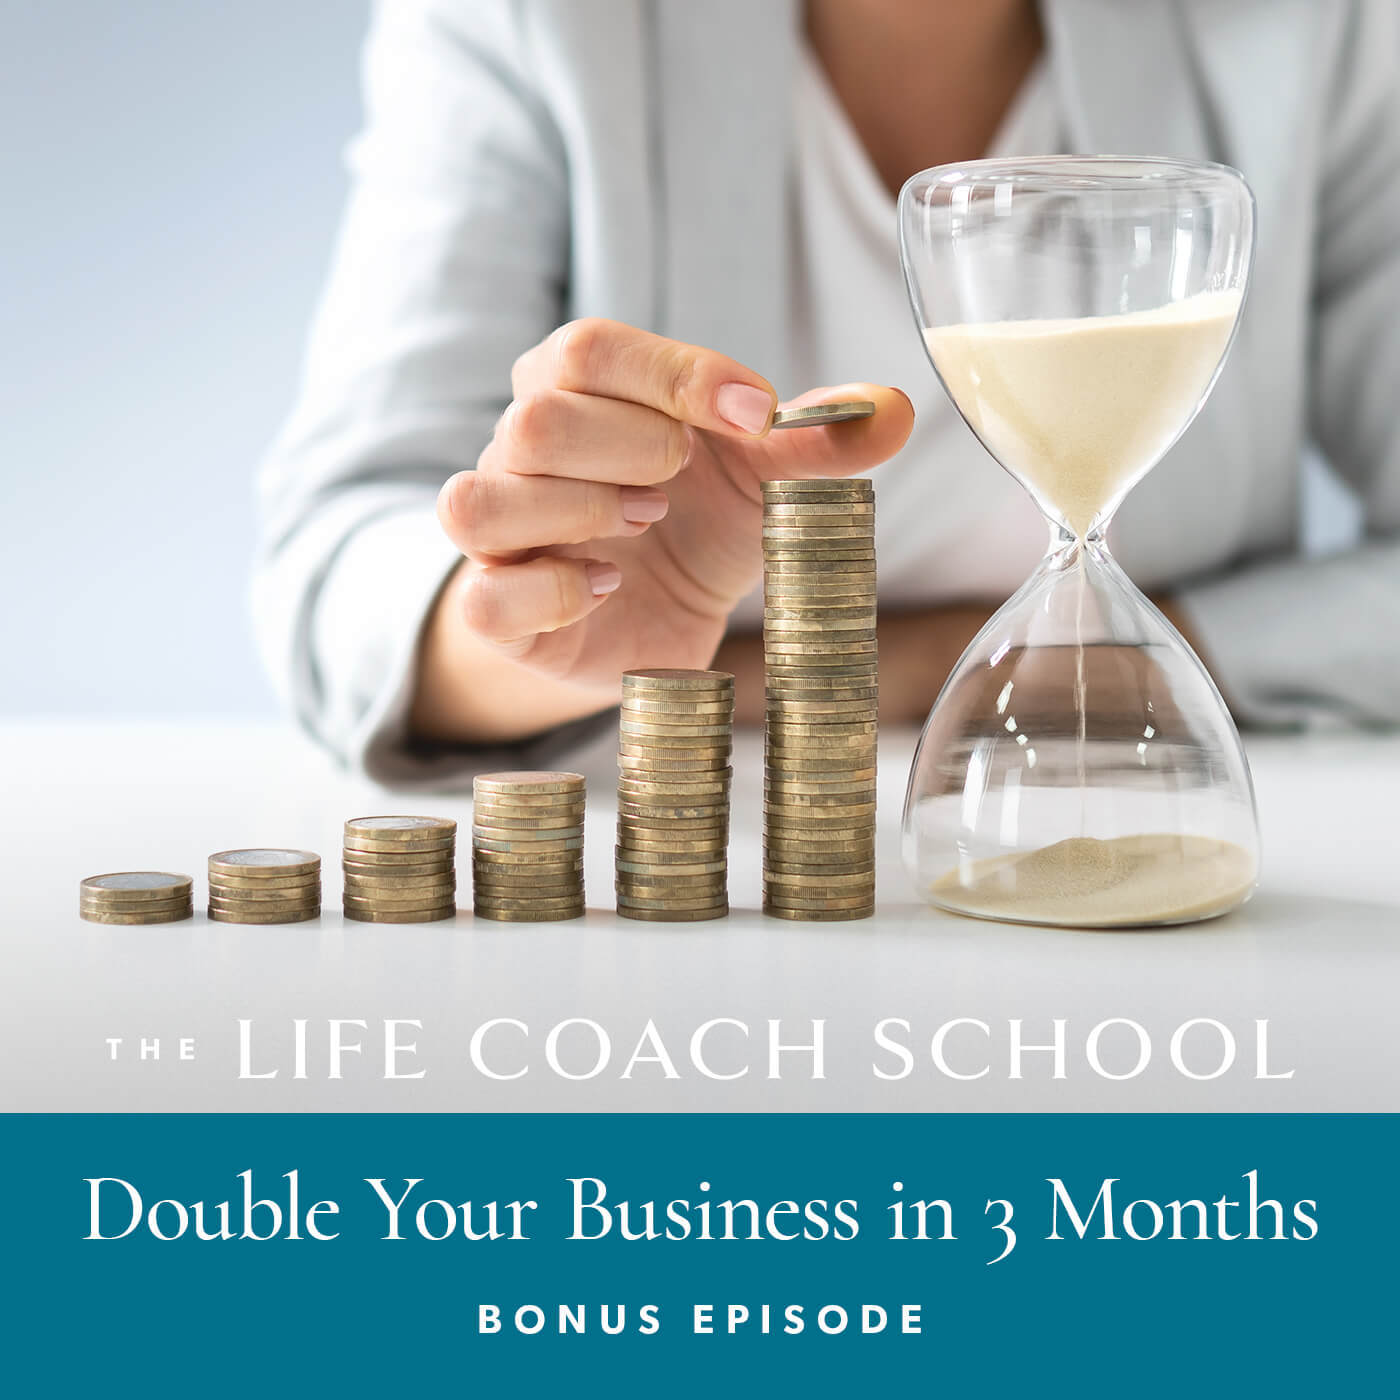 BONUS: Double Your Business in 3 Months